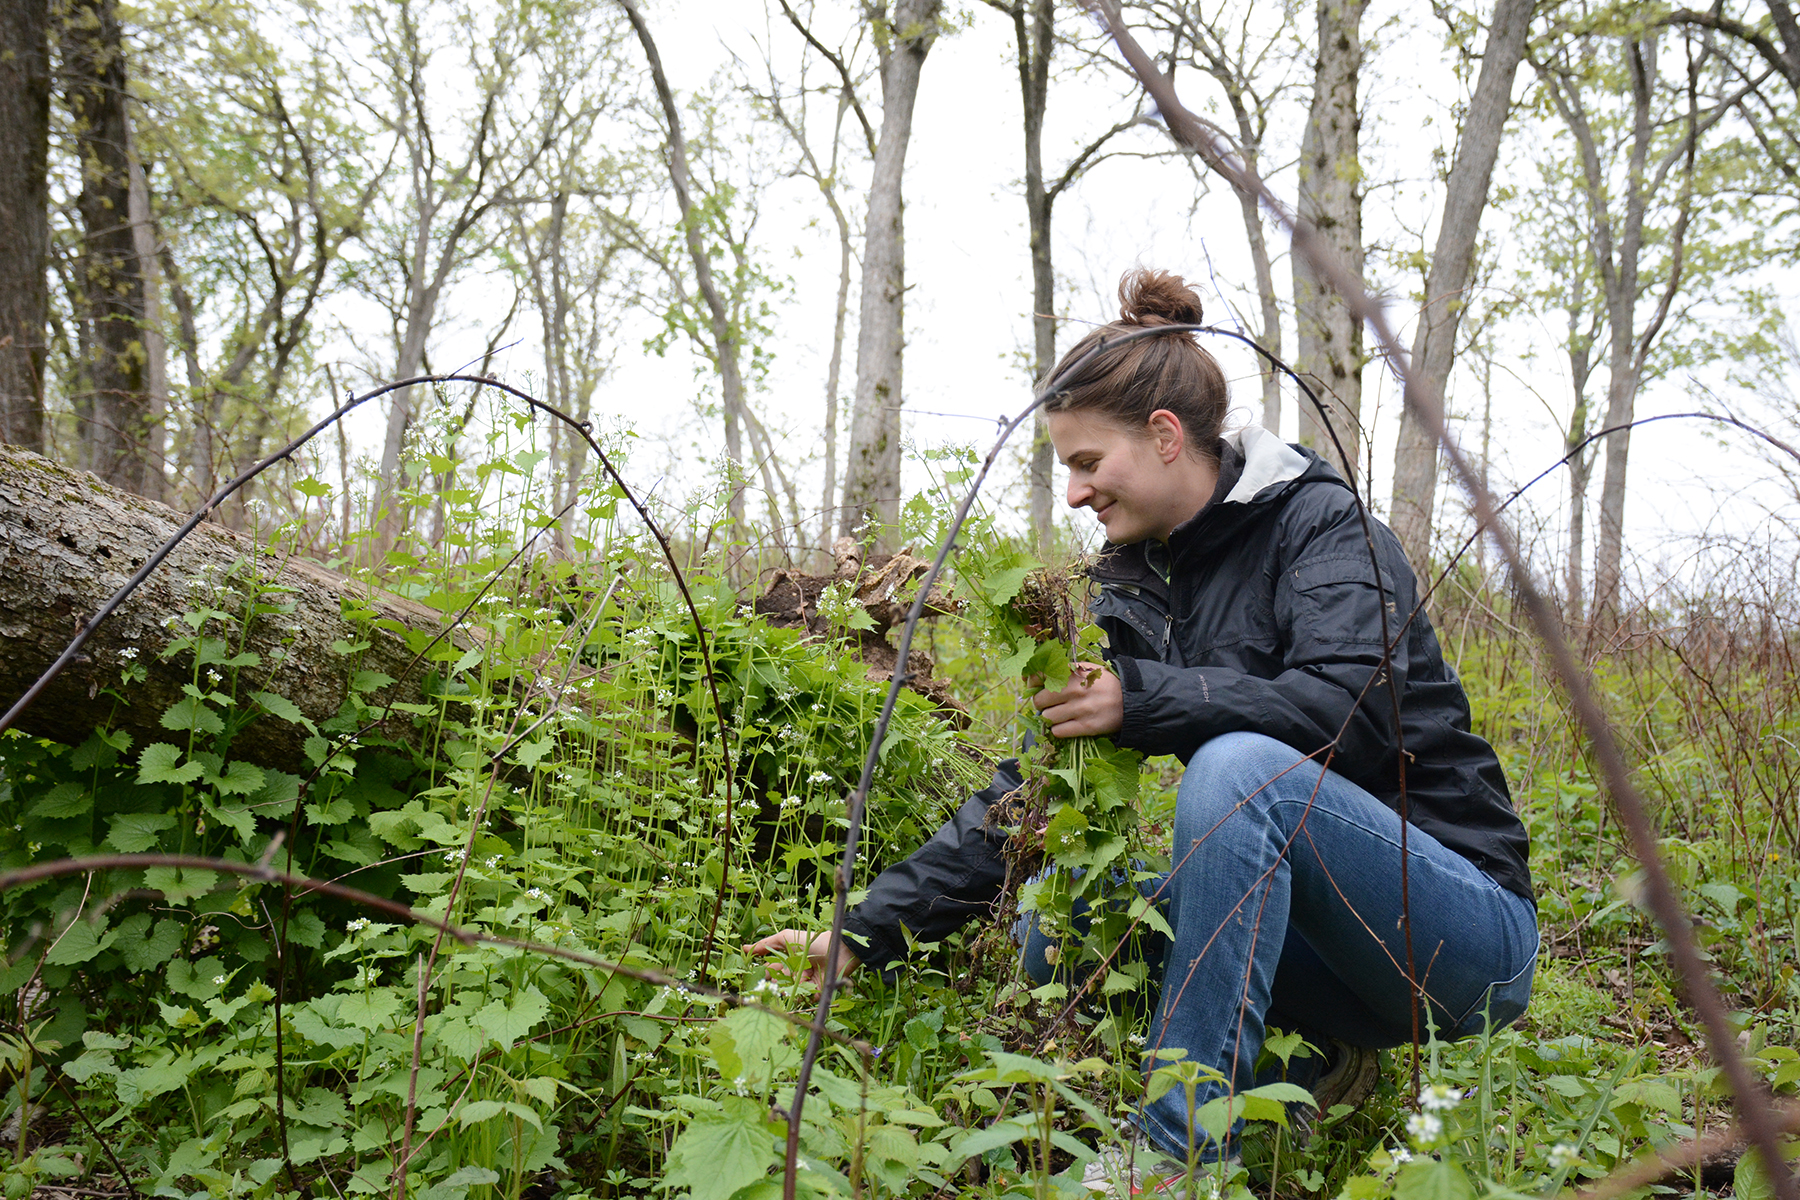 Krysta Koralesky pulls invasive garlic mustard near a fallen tree during a volunteer work day at Muehllehner Addition - Barneveld Prairie, Wis. May 14, 2016.